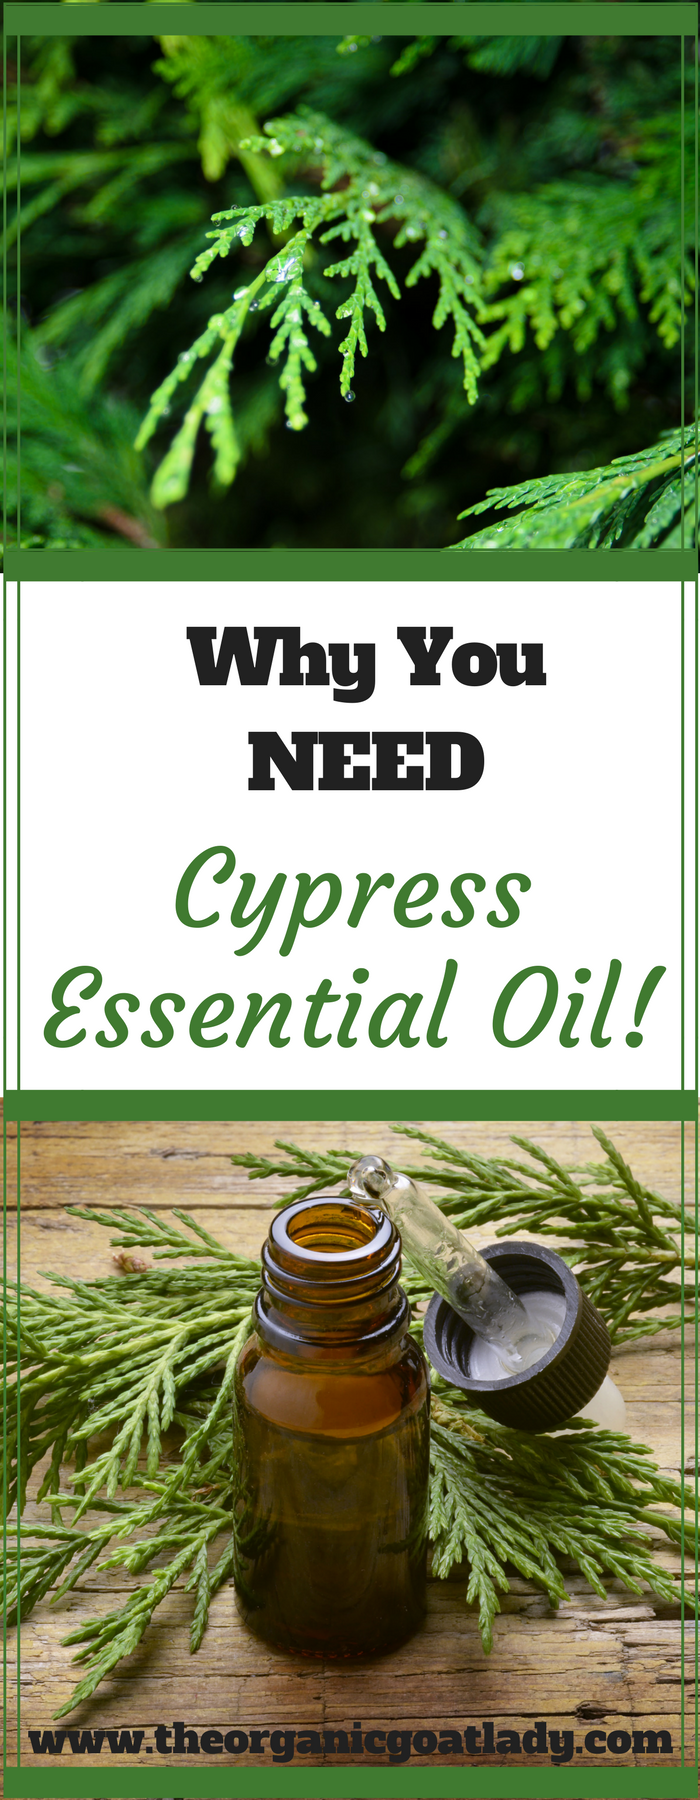 Why You NEED Cypress Essential Oil!